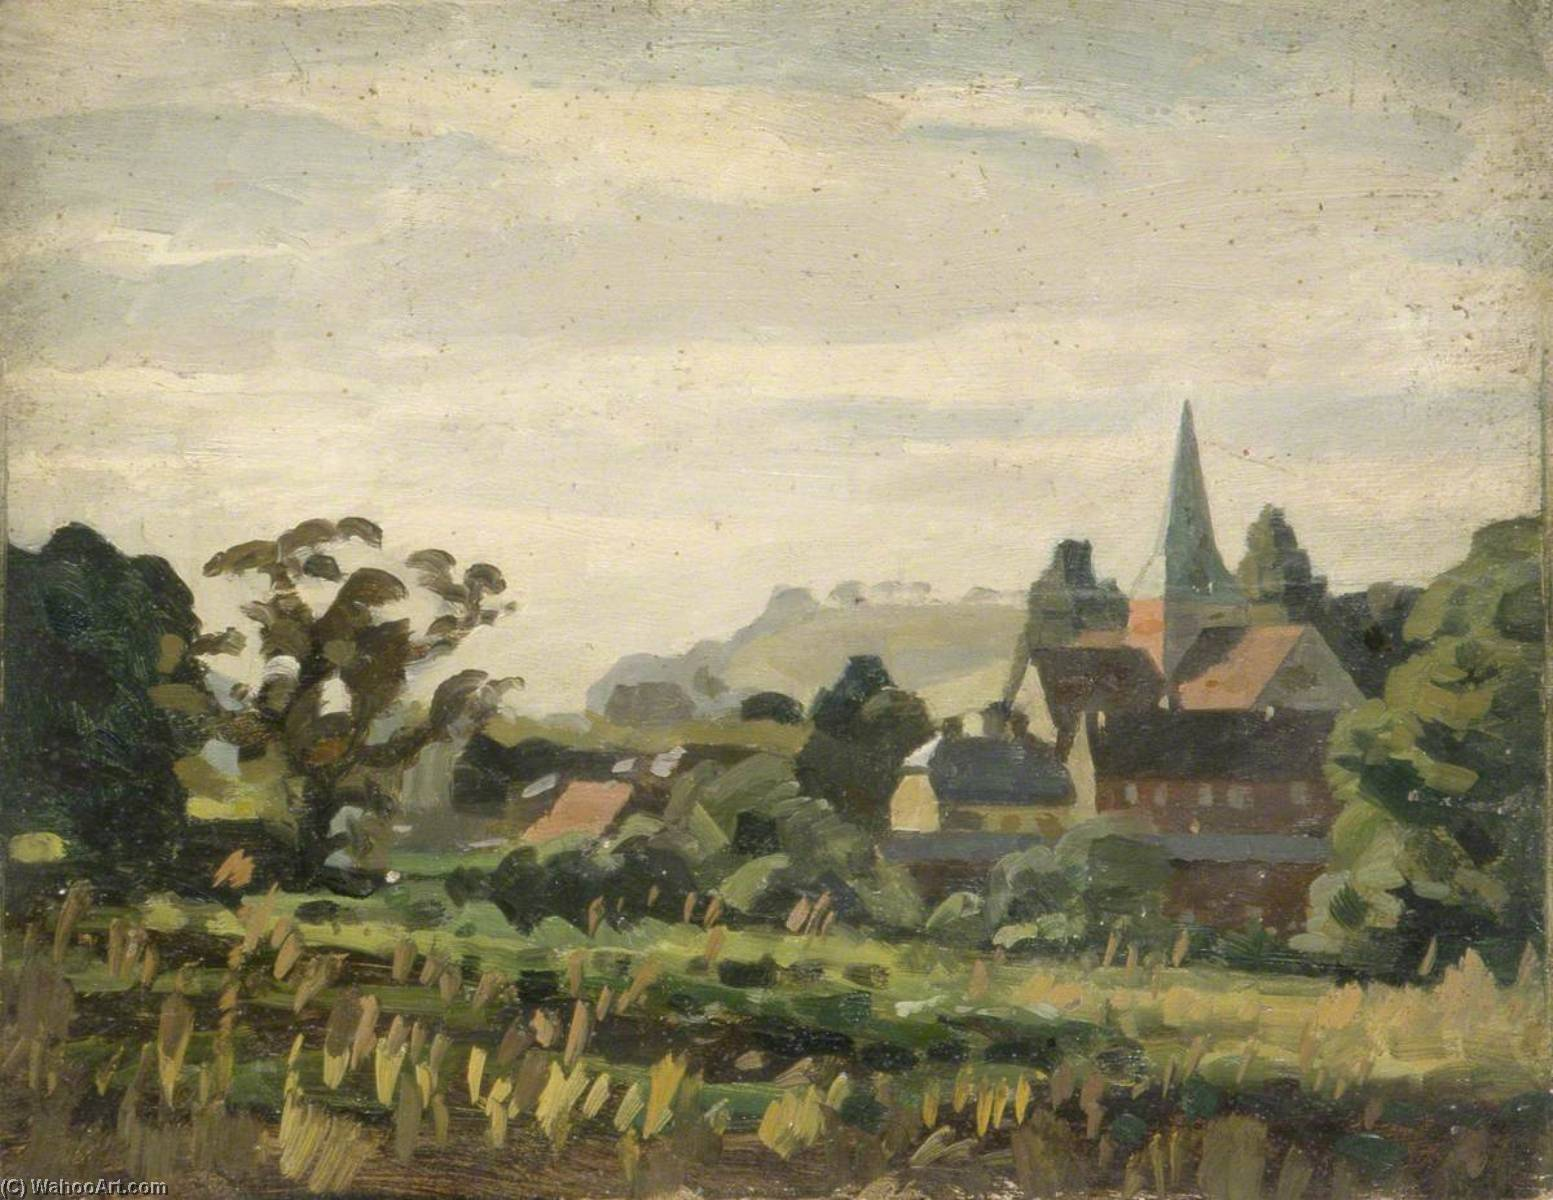 Rural Scene with a Village and a Church Spire, 1930 by Gunning King | Paintings Reproductions Gunning King | WahooArt.com